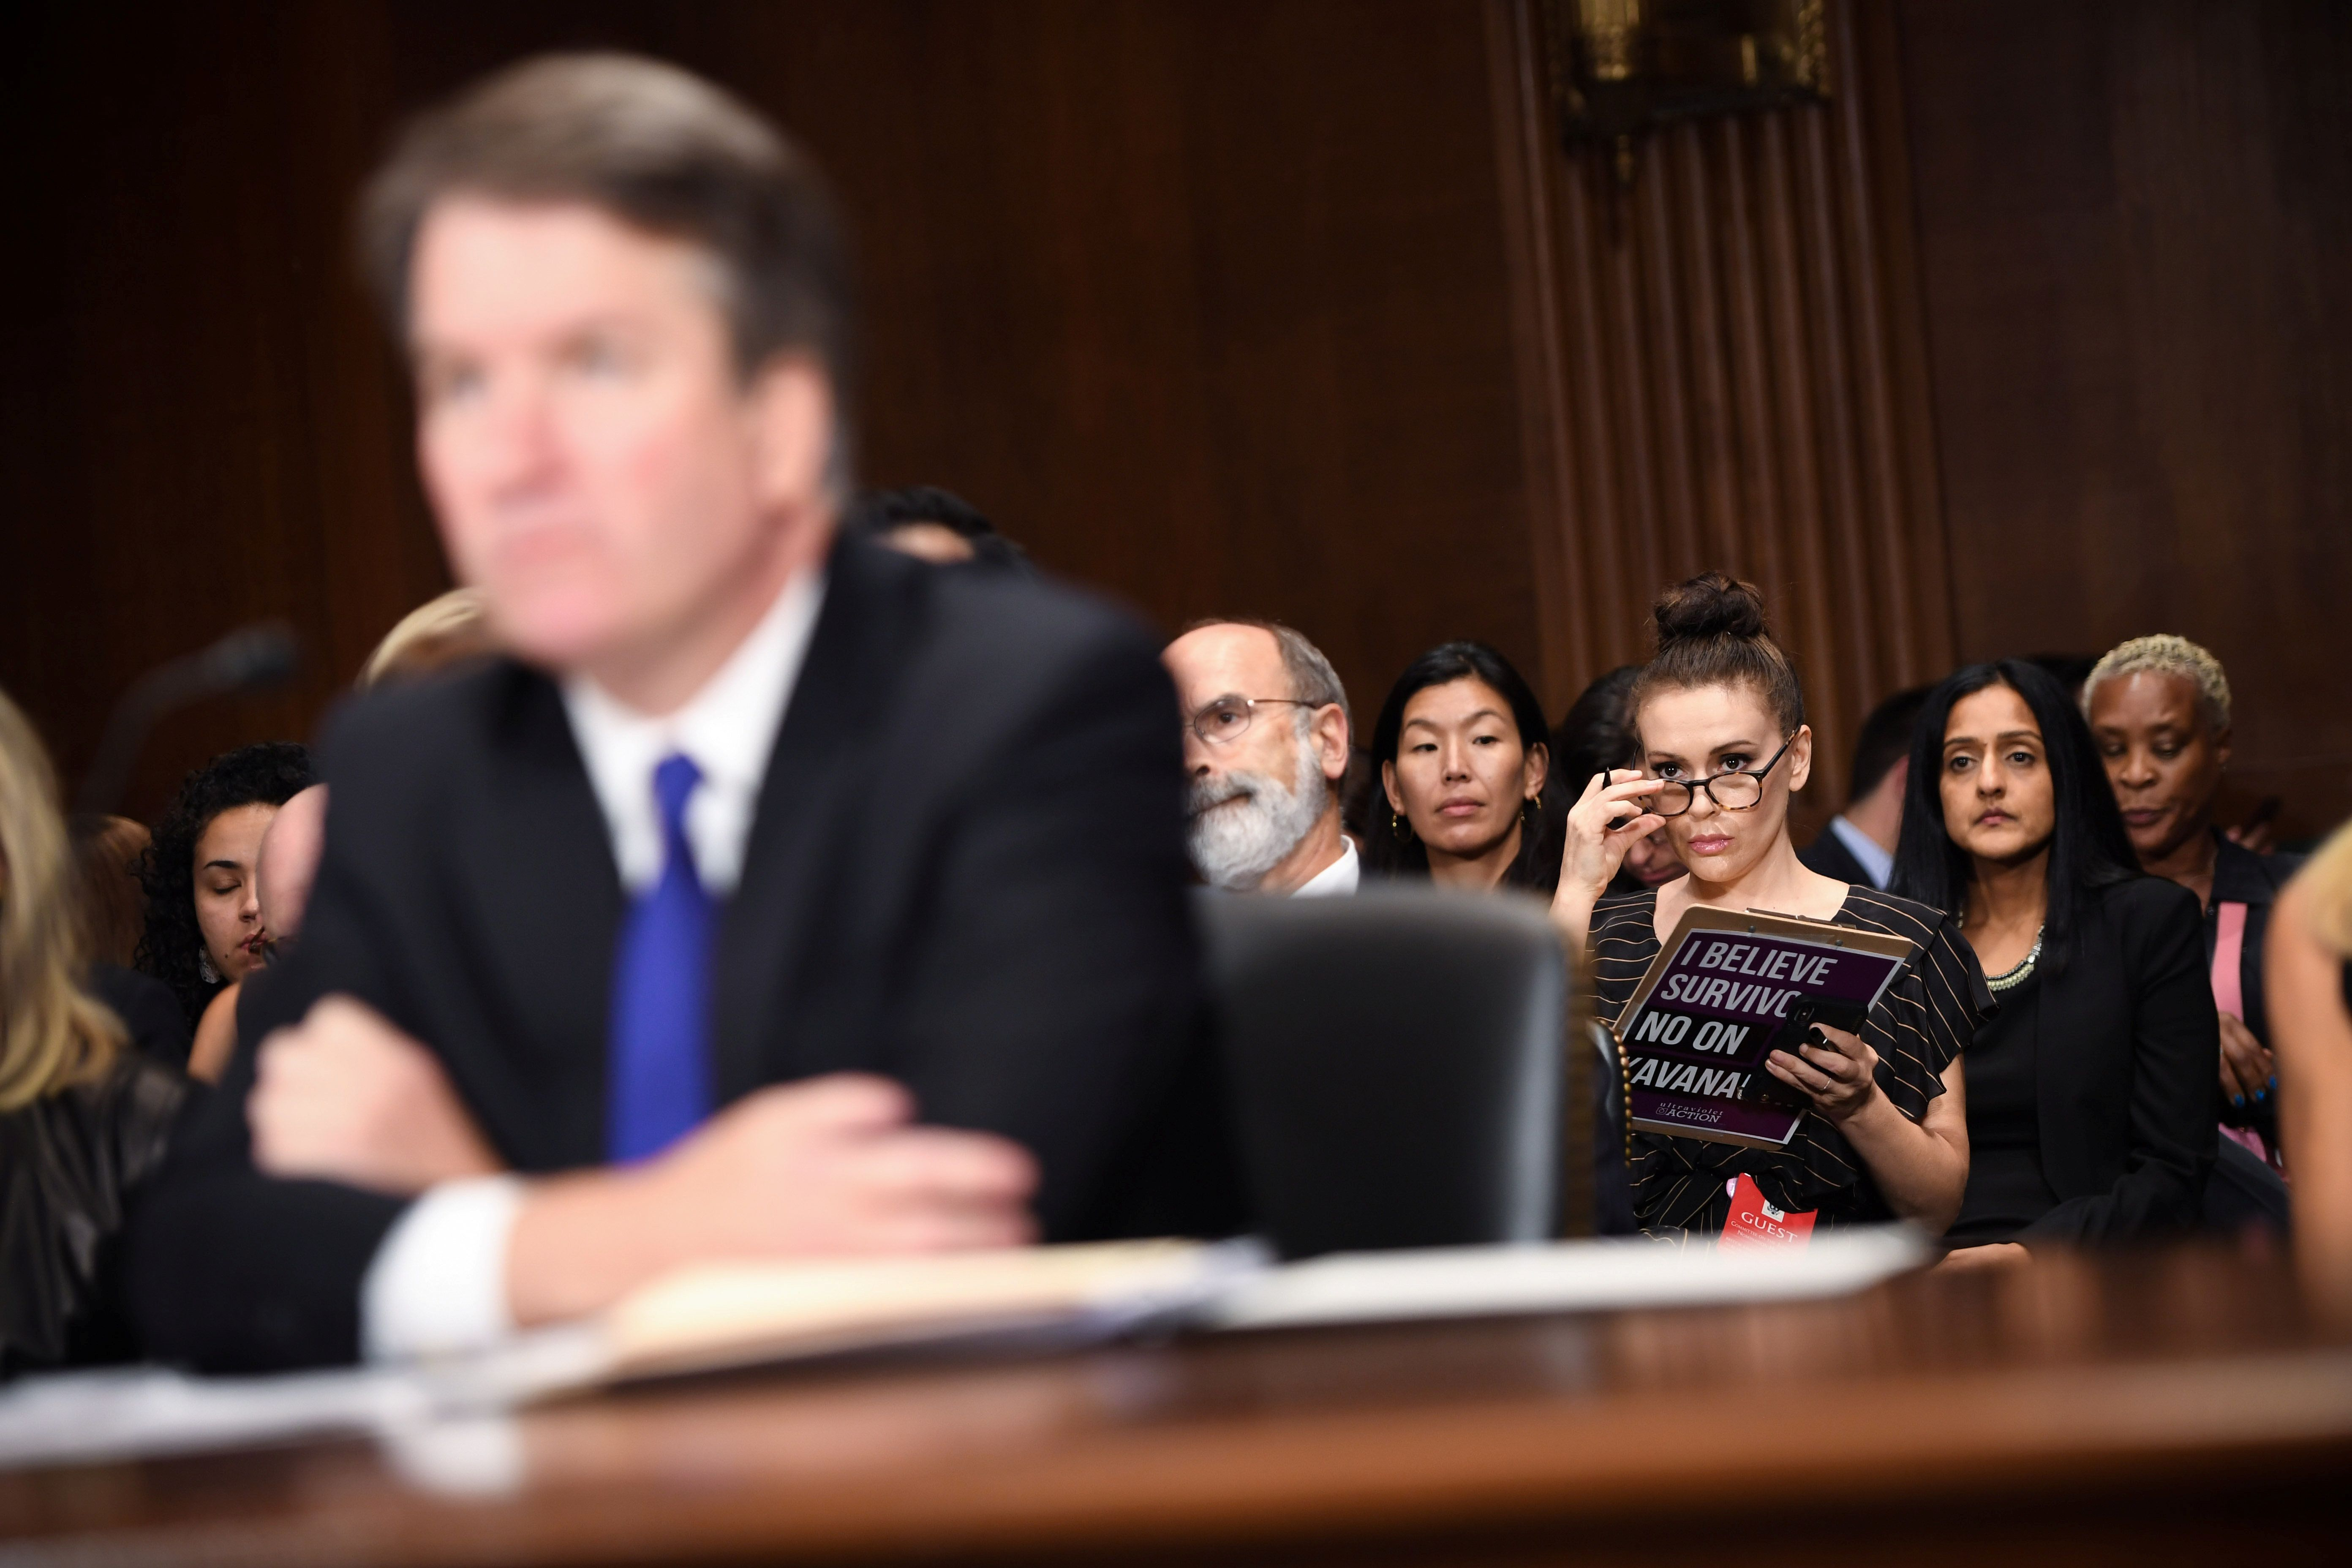 Actress Alyssa Milano listens to Supreme Court nominee Brett Kavanaugh as he testifies before the Senate Judiciary Committee on Capitol Hill in Washington, DC, U.S., September 27, 2018. Saul Loeb/Pool via REUTERS